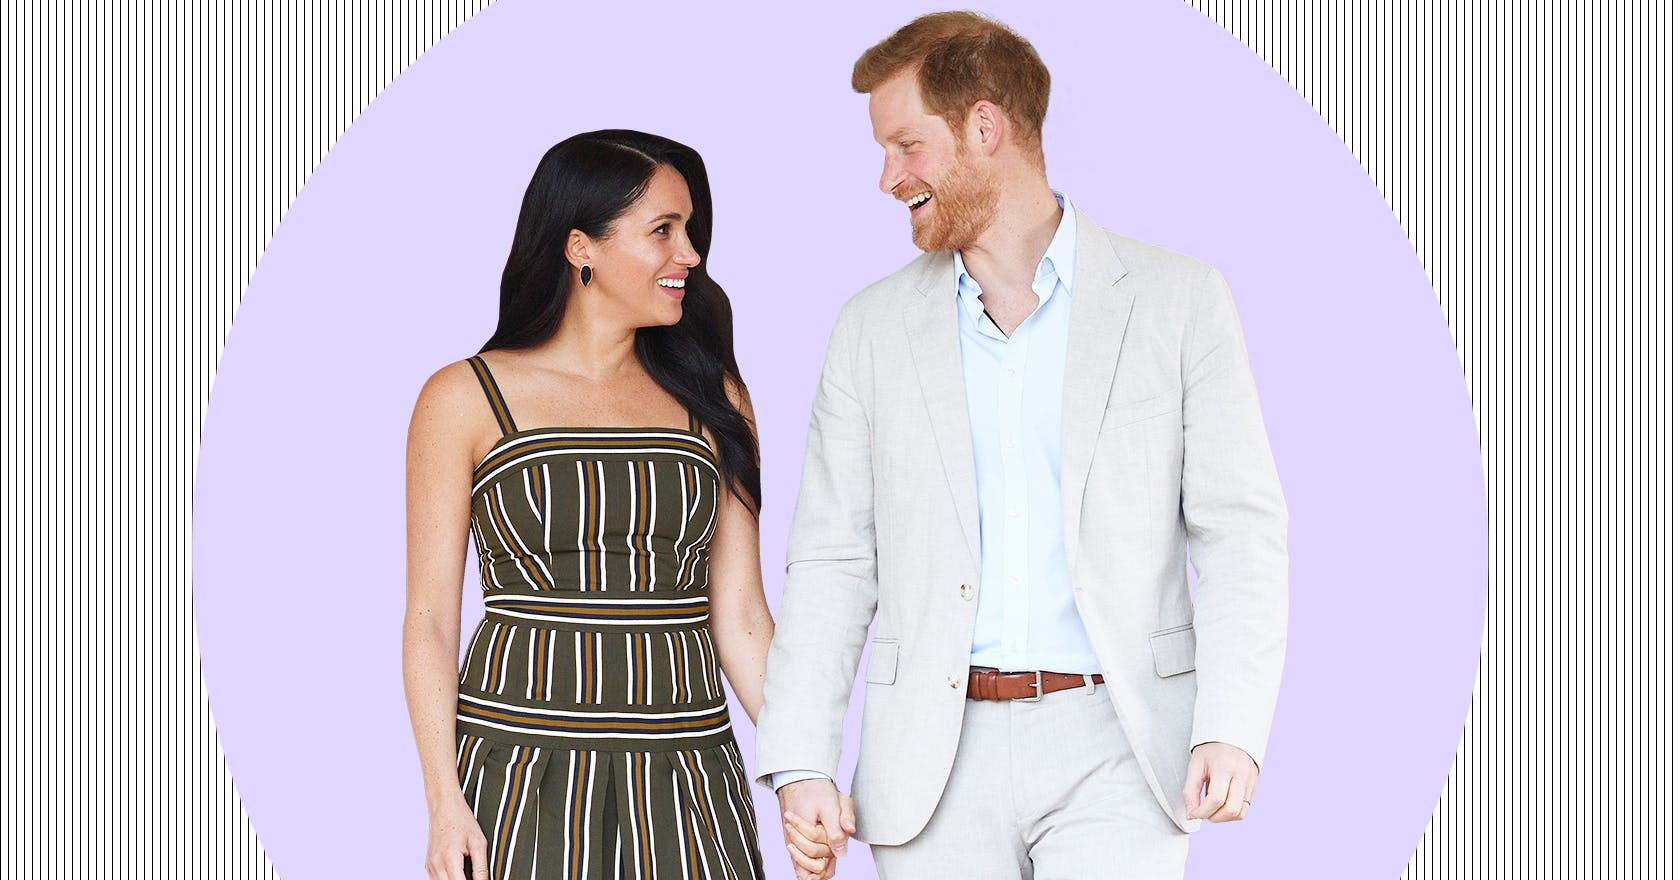 Meghan Markle and Prince Harry just signed a big deal with Netflix – here's what we can expect